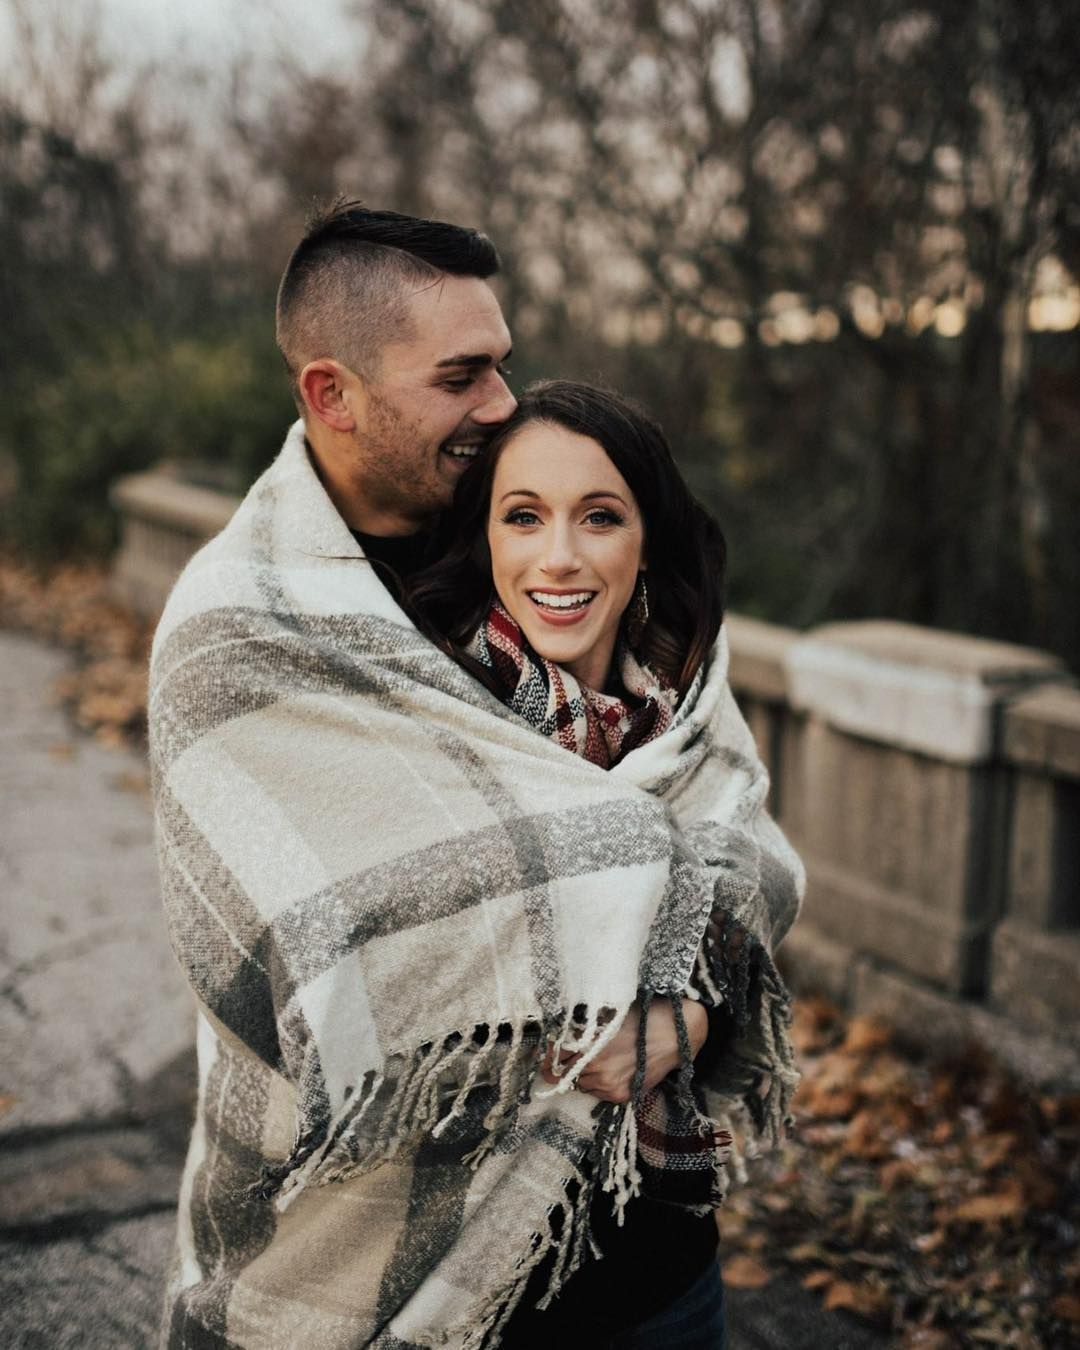 meredithgravesphotography Cozy outdoor winter engagement